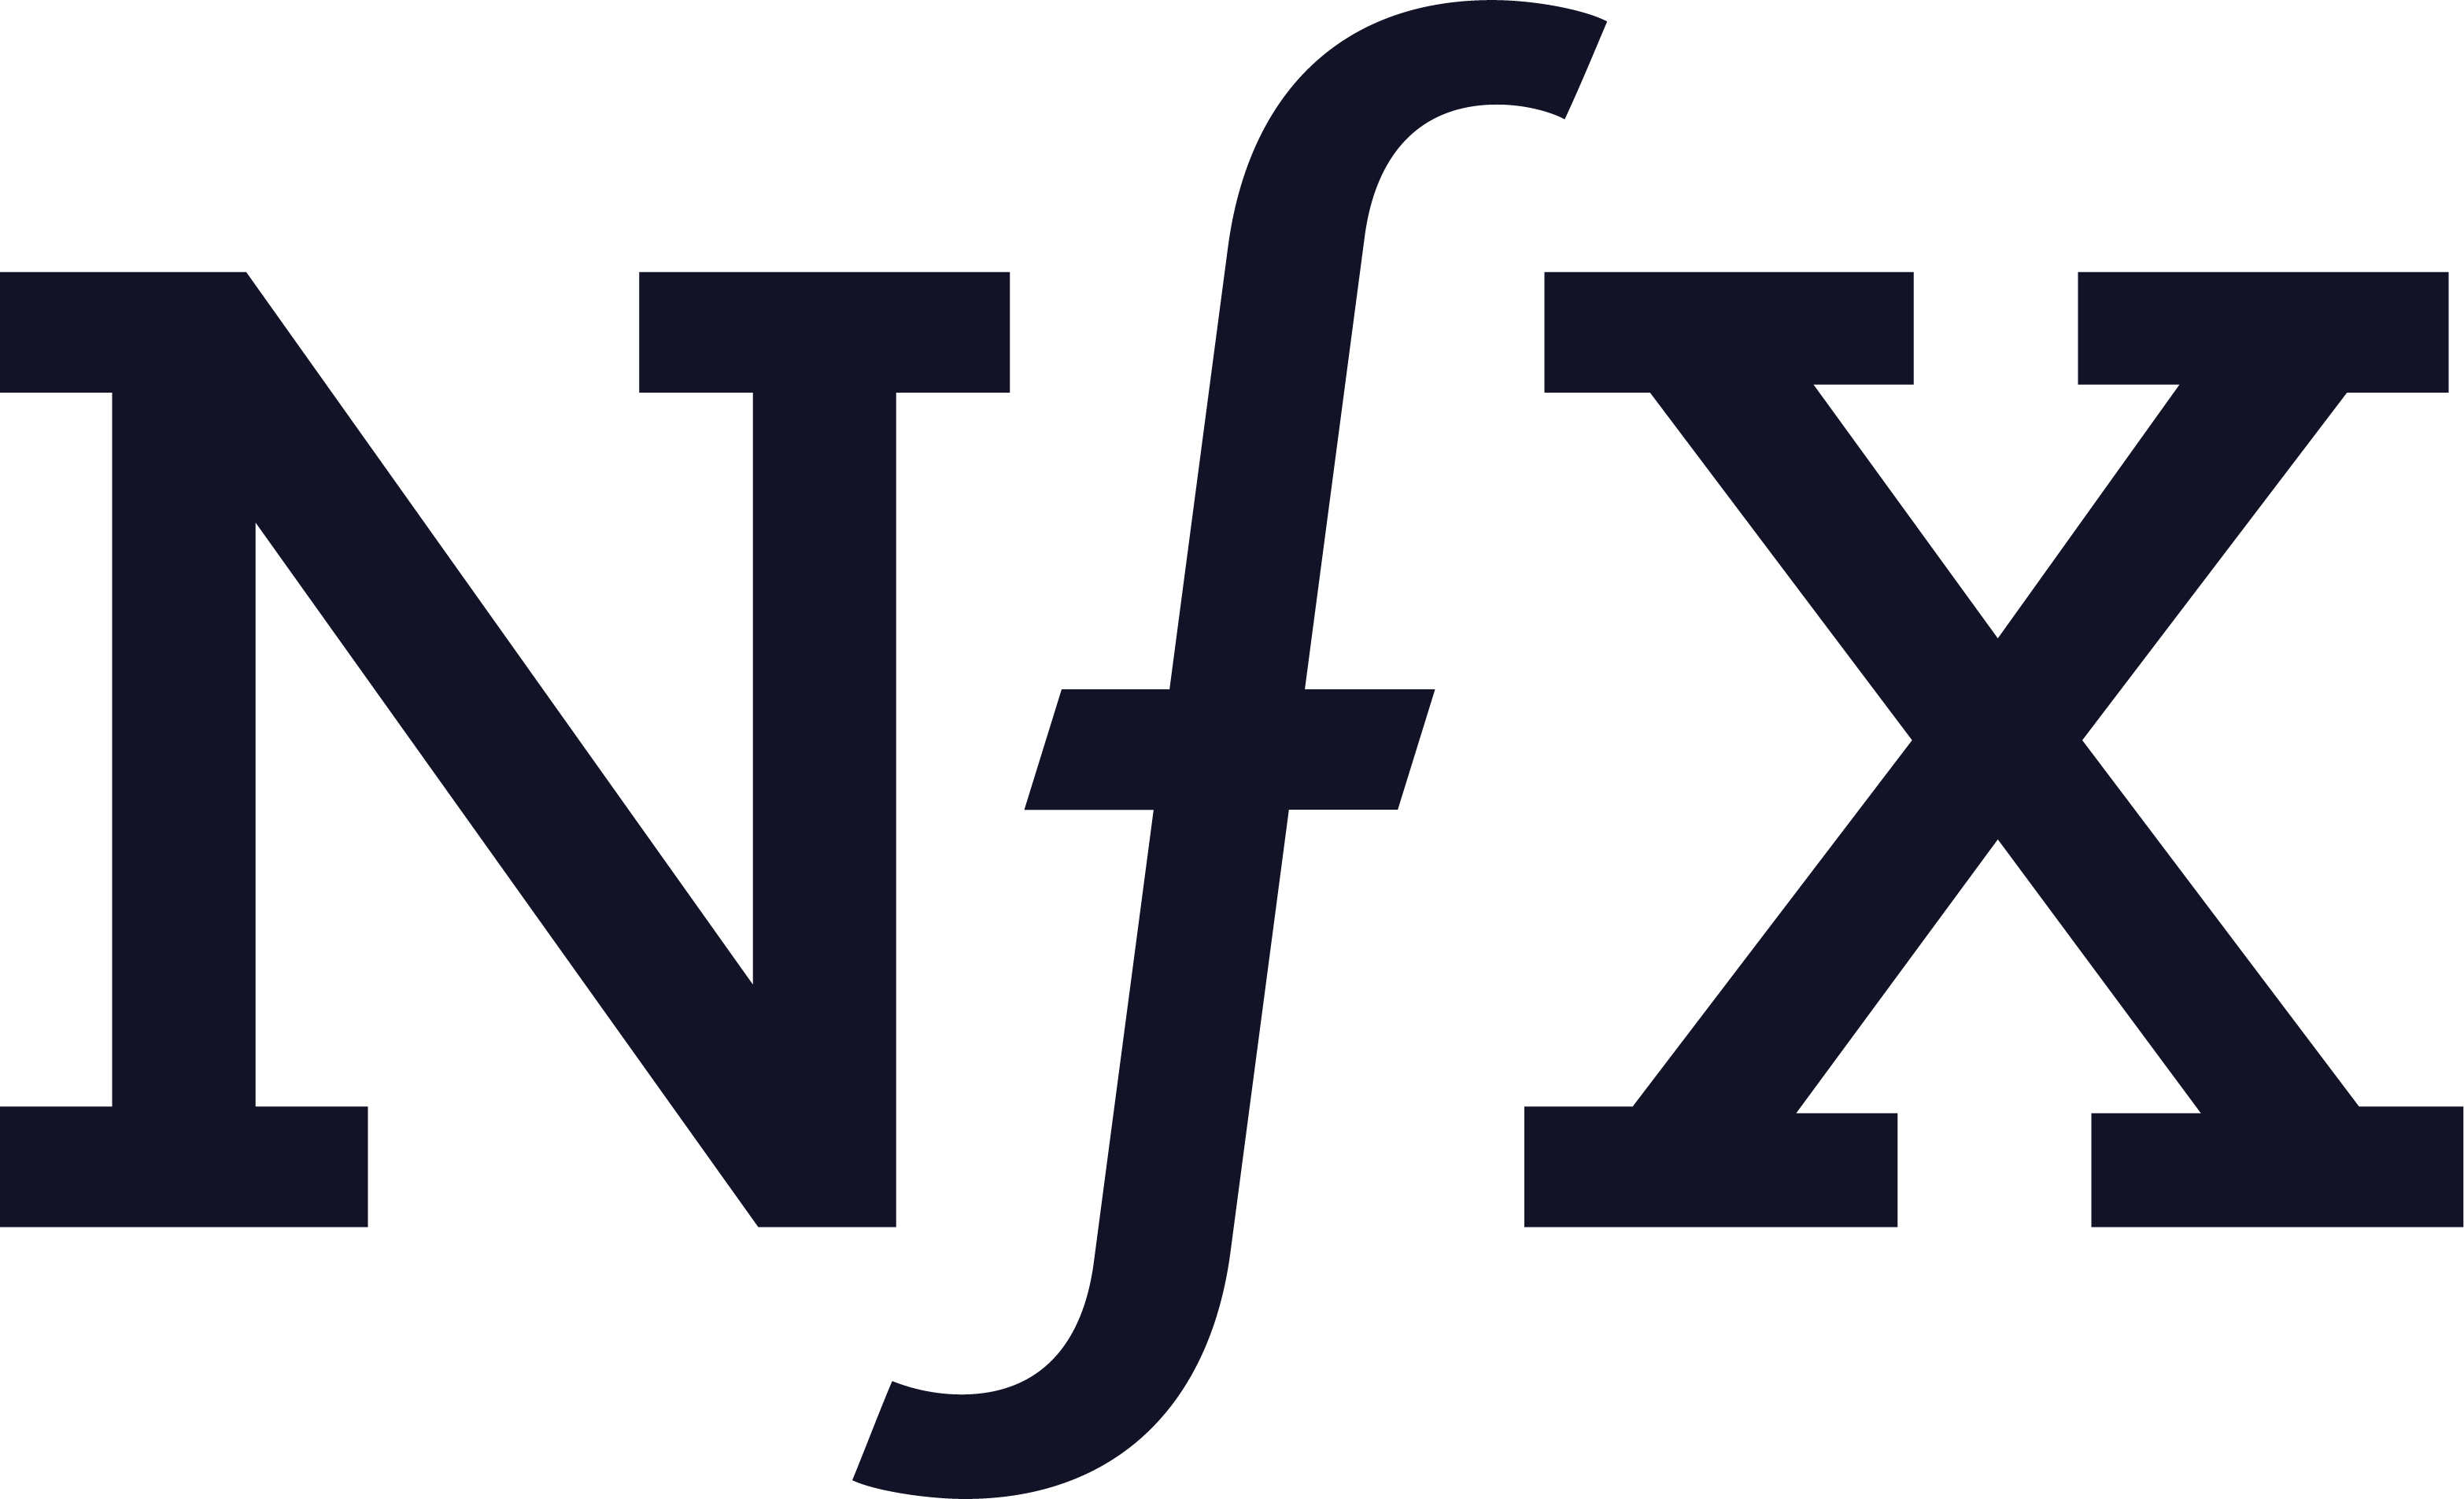 Job Application for Product Design - Reinventing VC at NFX